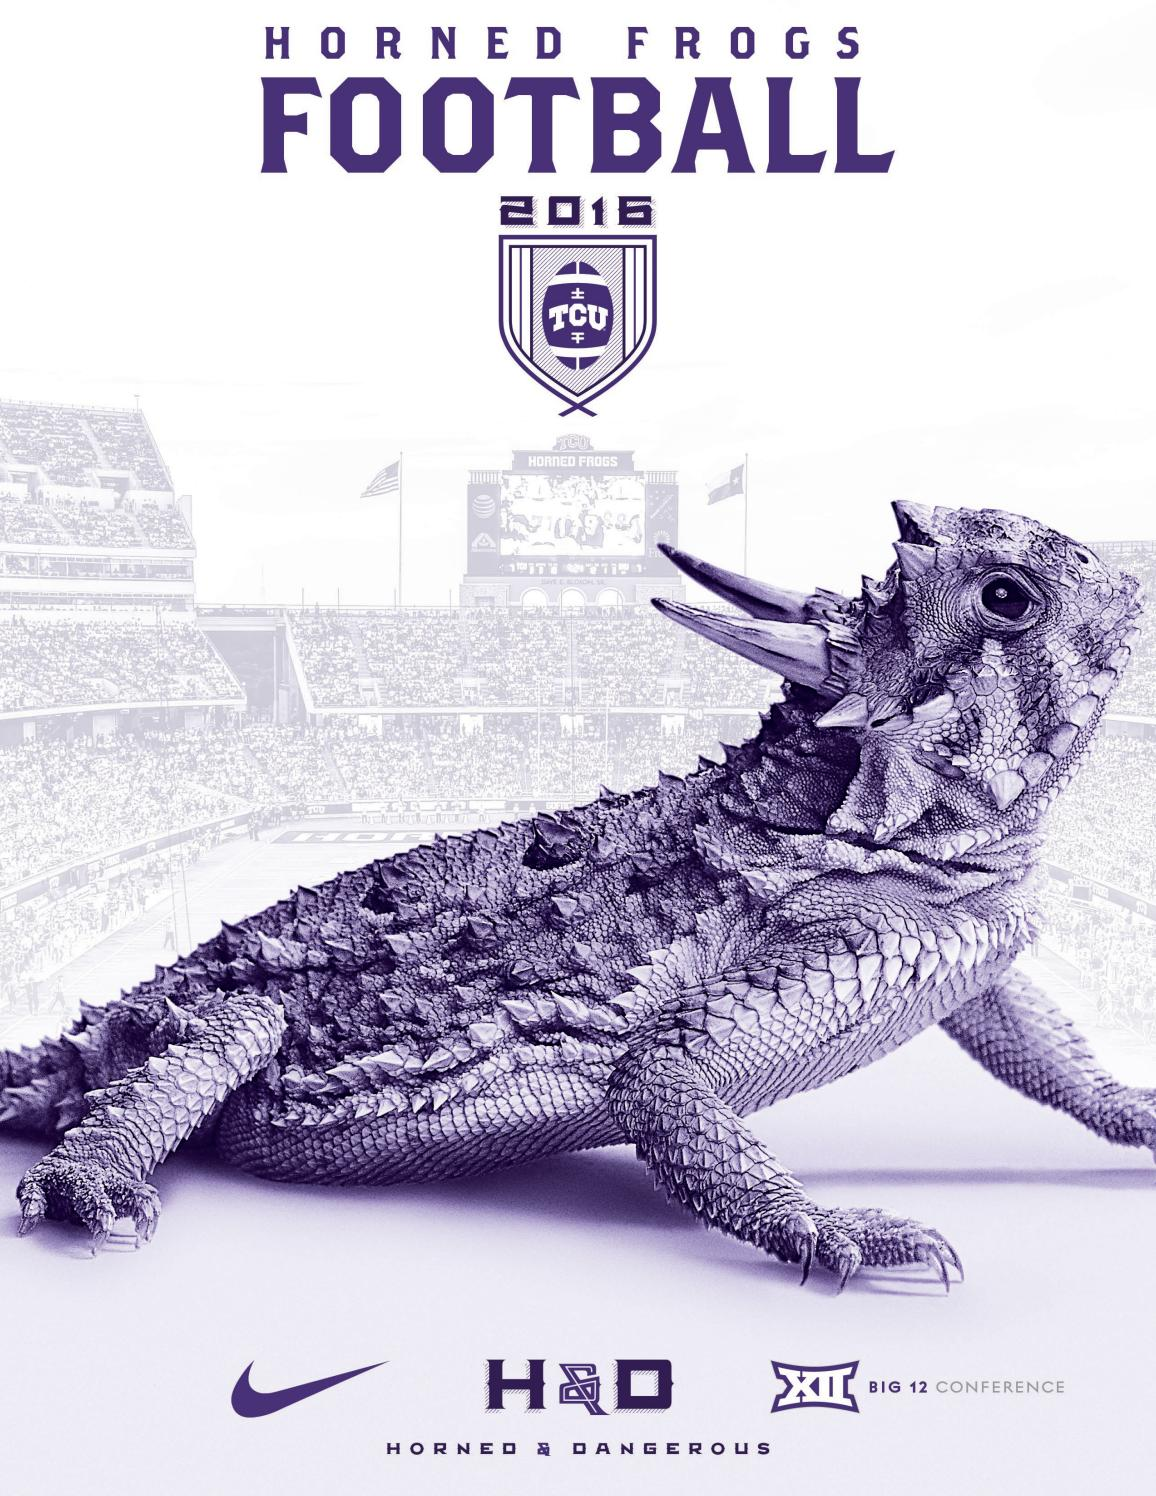 2016 Tcu Football Fact Book By Athletics Issuu Mao Tayo Parking Area 660 204